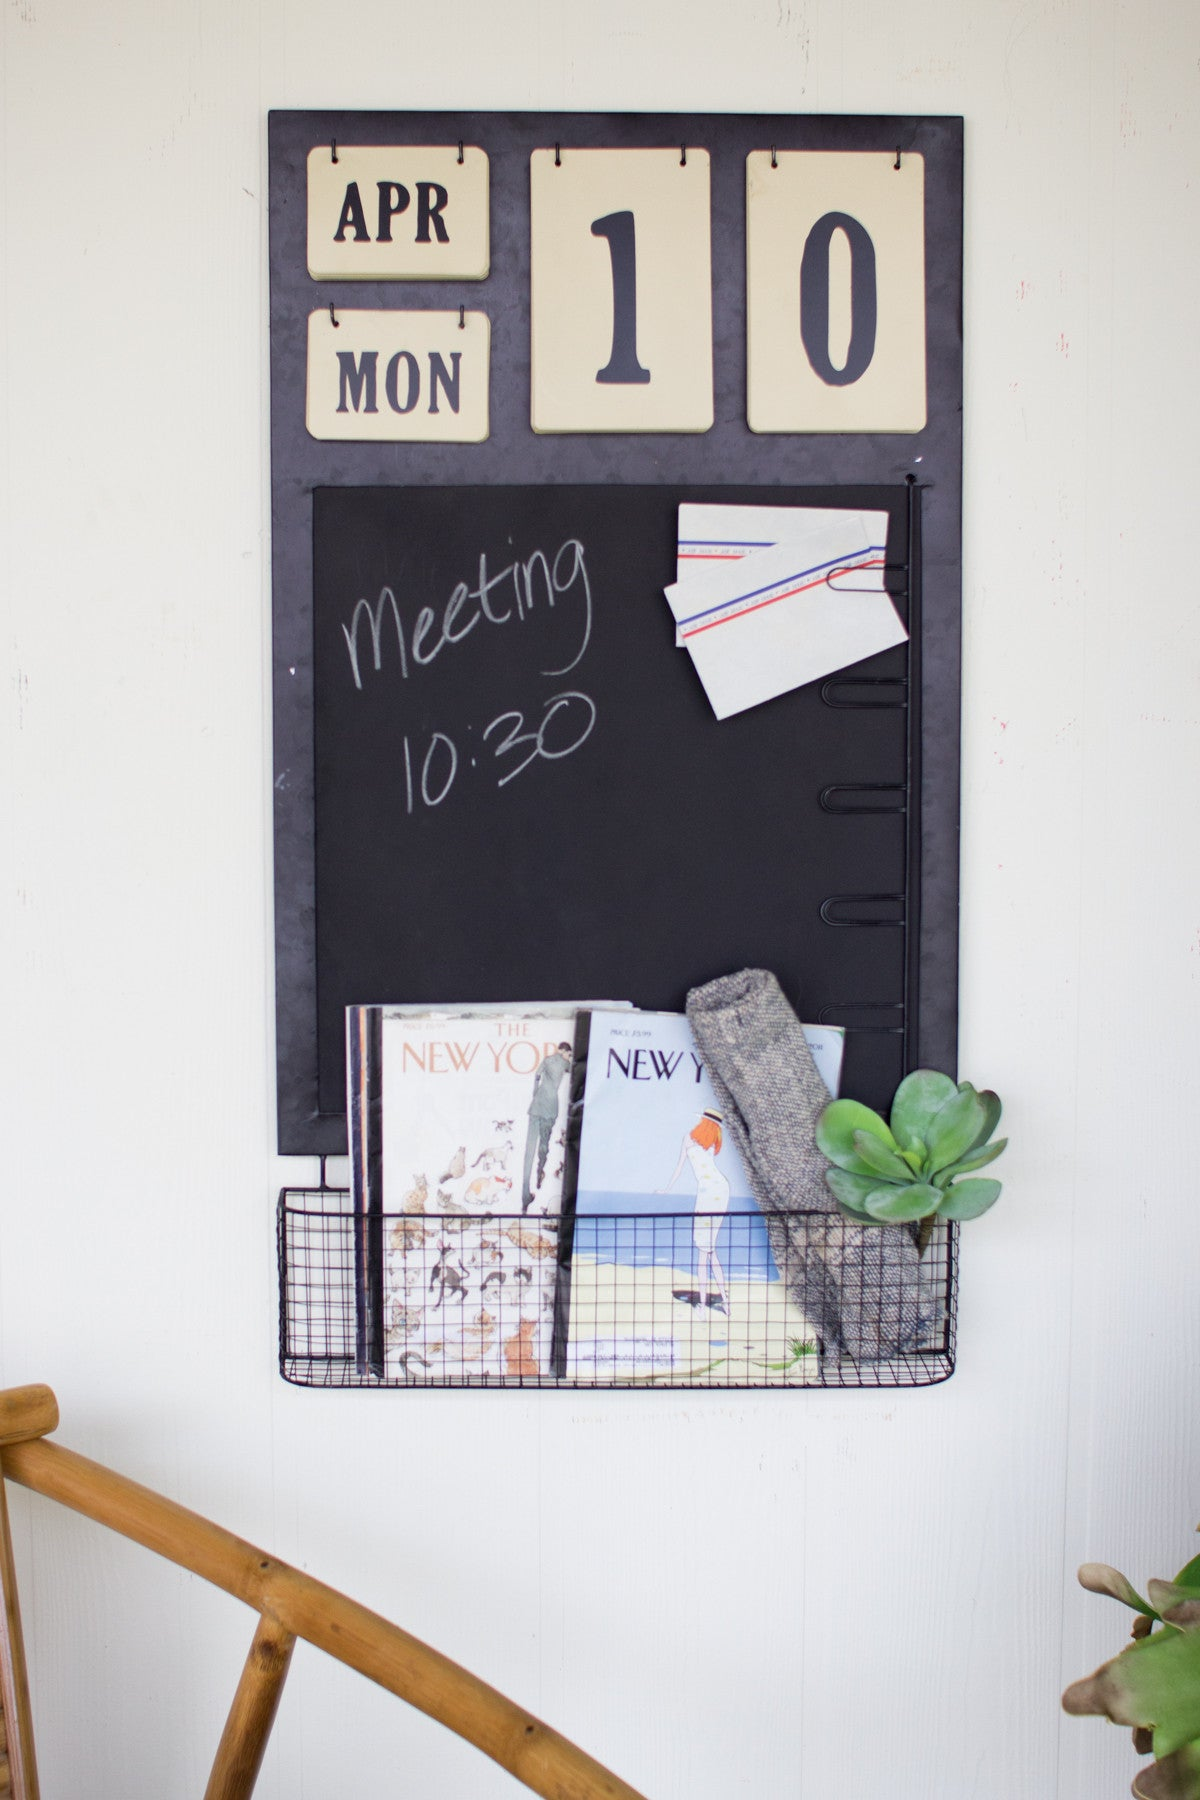 CALENDAR WITH CHALKBOARD, NOTE CLIPS AND BASKET